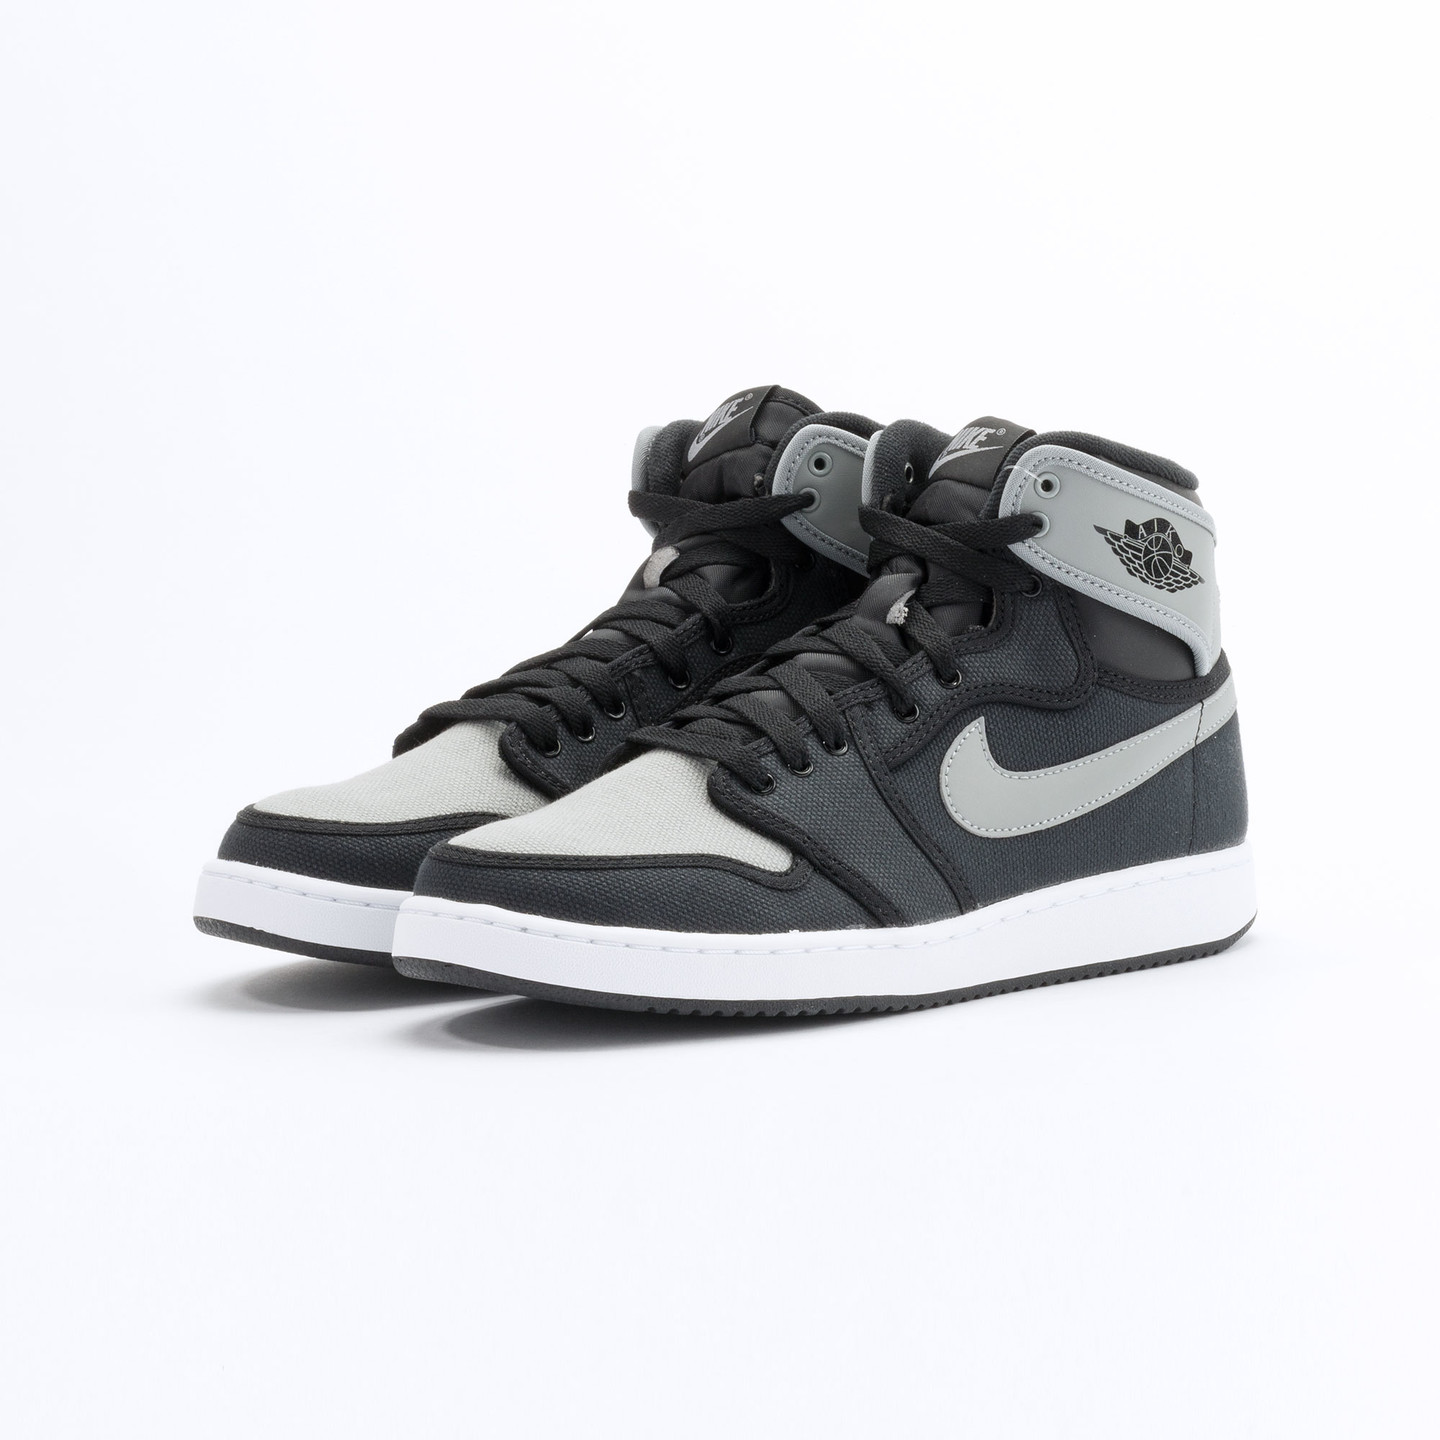 Nike Air Jordan 1 KO High OG Black / Shadow Grey / White 638471-003-46